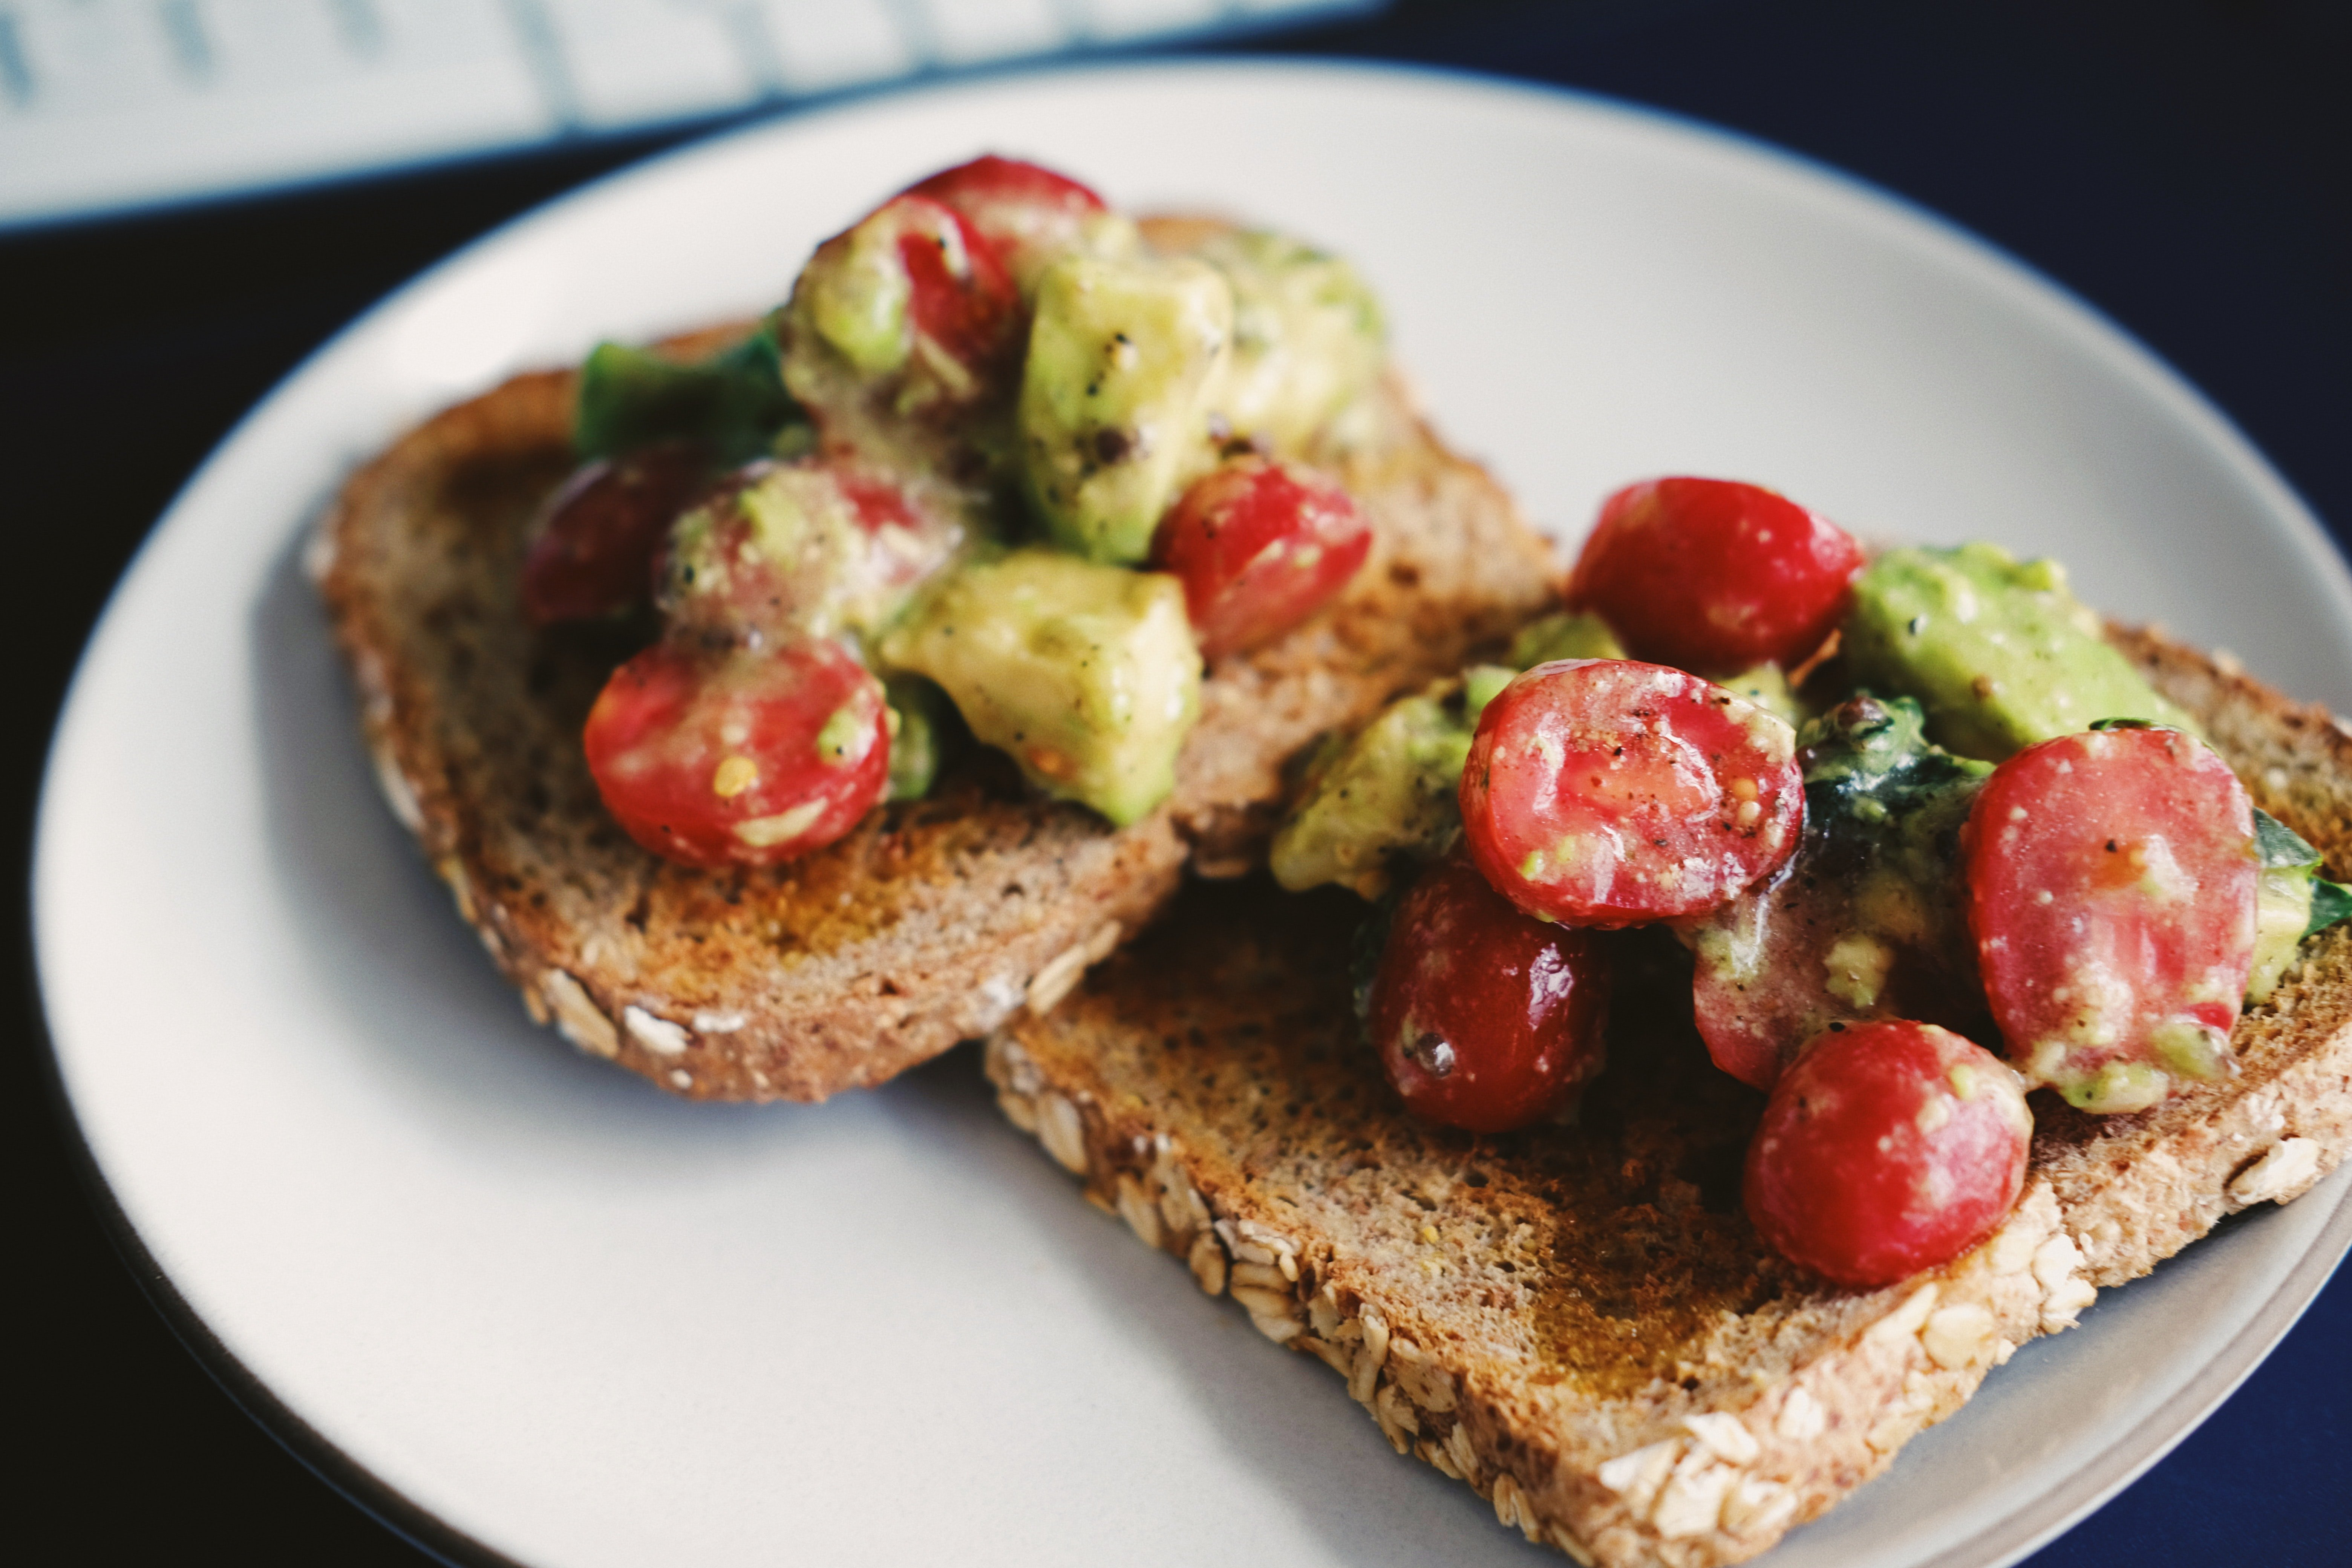 Whole grain toast with tomato and avocado is a quick and healthy snack.